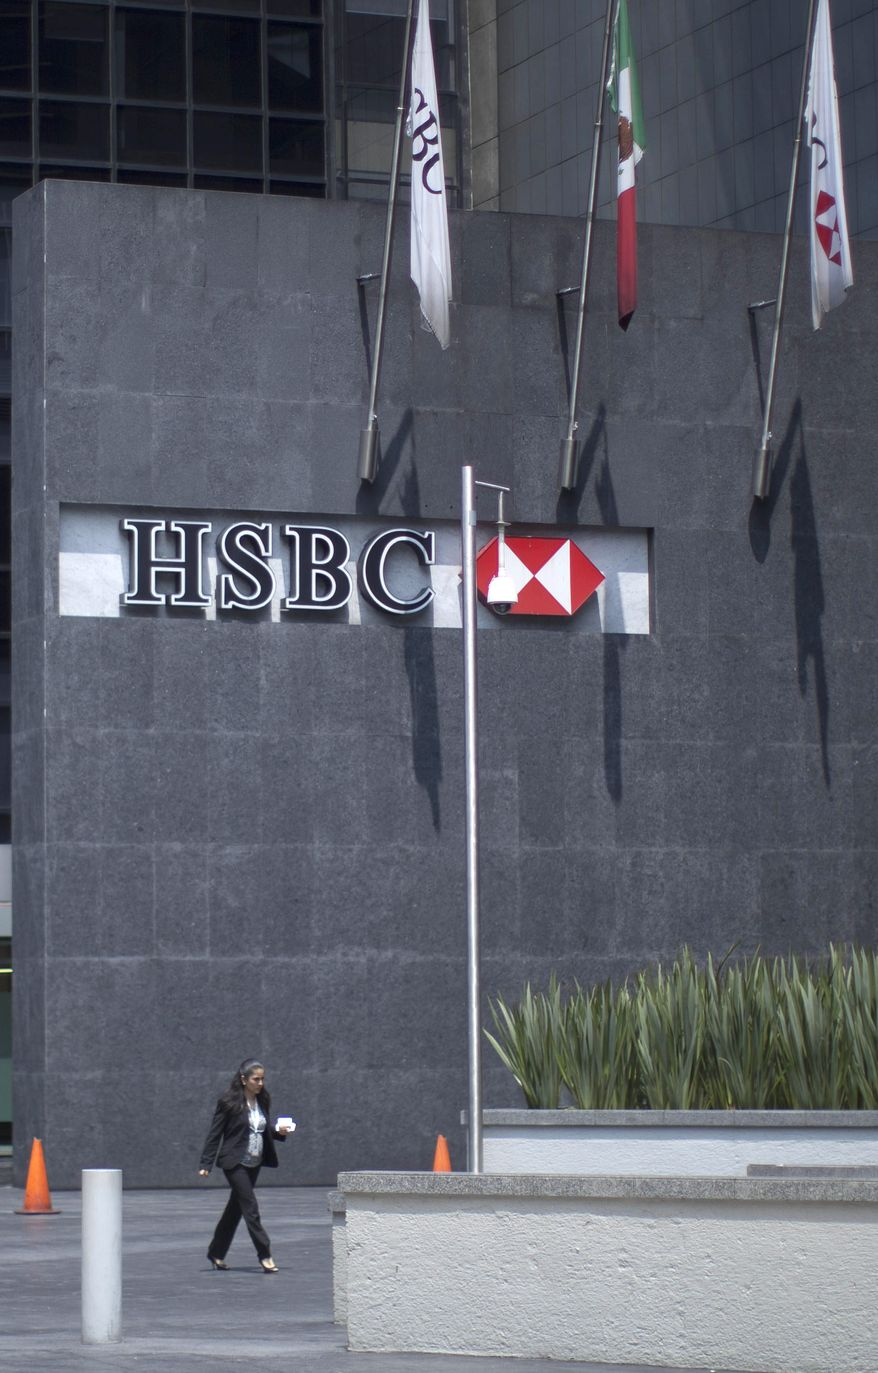 A woman walks in front of the HSBC bank headquarters in Mexico City, Tuesday, July 17, 2012. The chief compliance officer of Britain's HSBC Tuesday said he was stepping down from that position after an investigation found that lax controls at the international bank allowed Mexican drug cartels to launder billions of dollars through its U.S. operation and other illicit transactions. (AP Photo/Alexandre Meneghini)